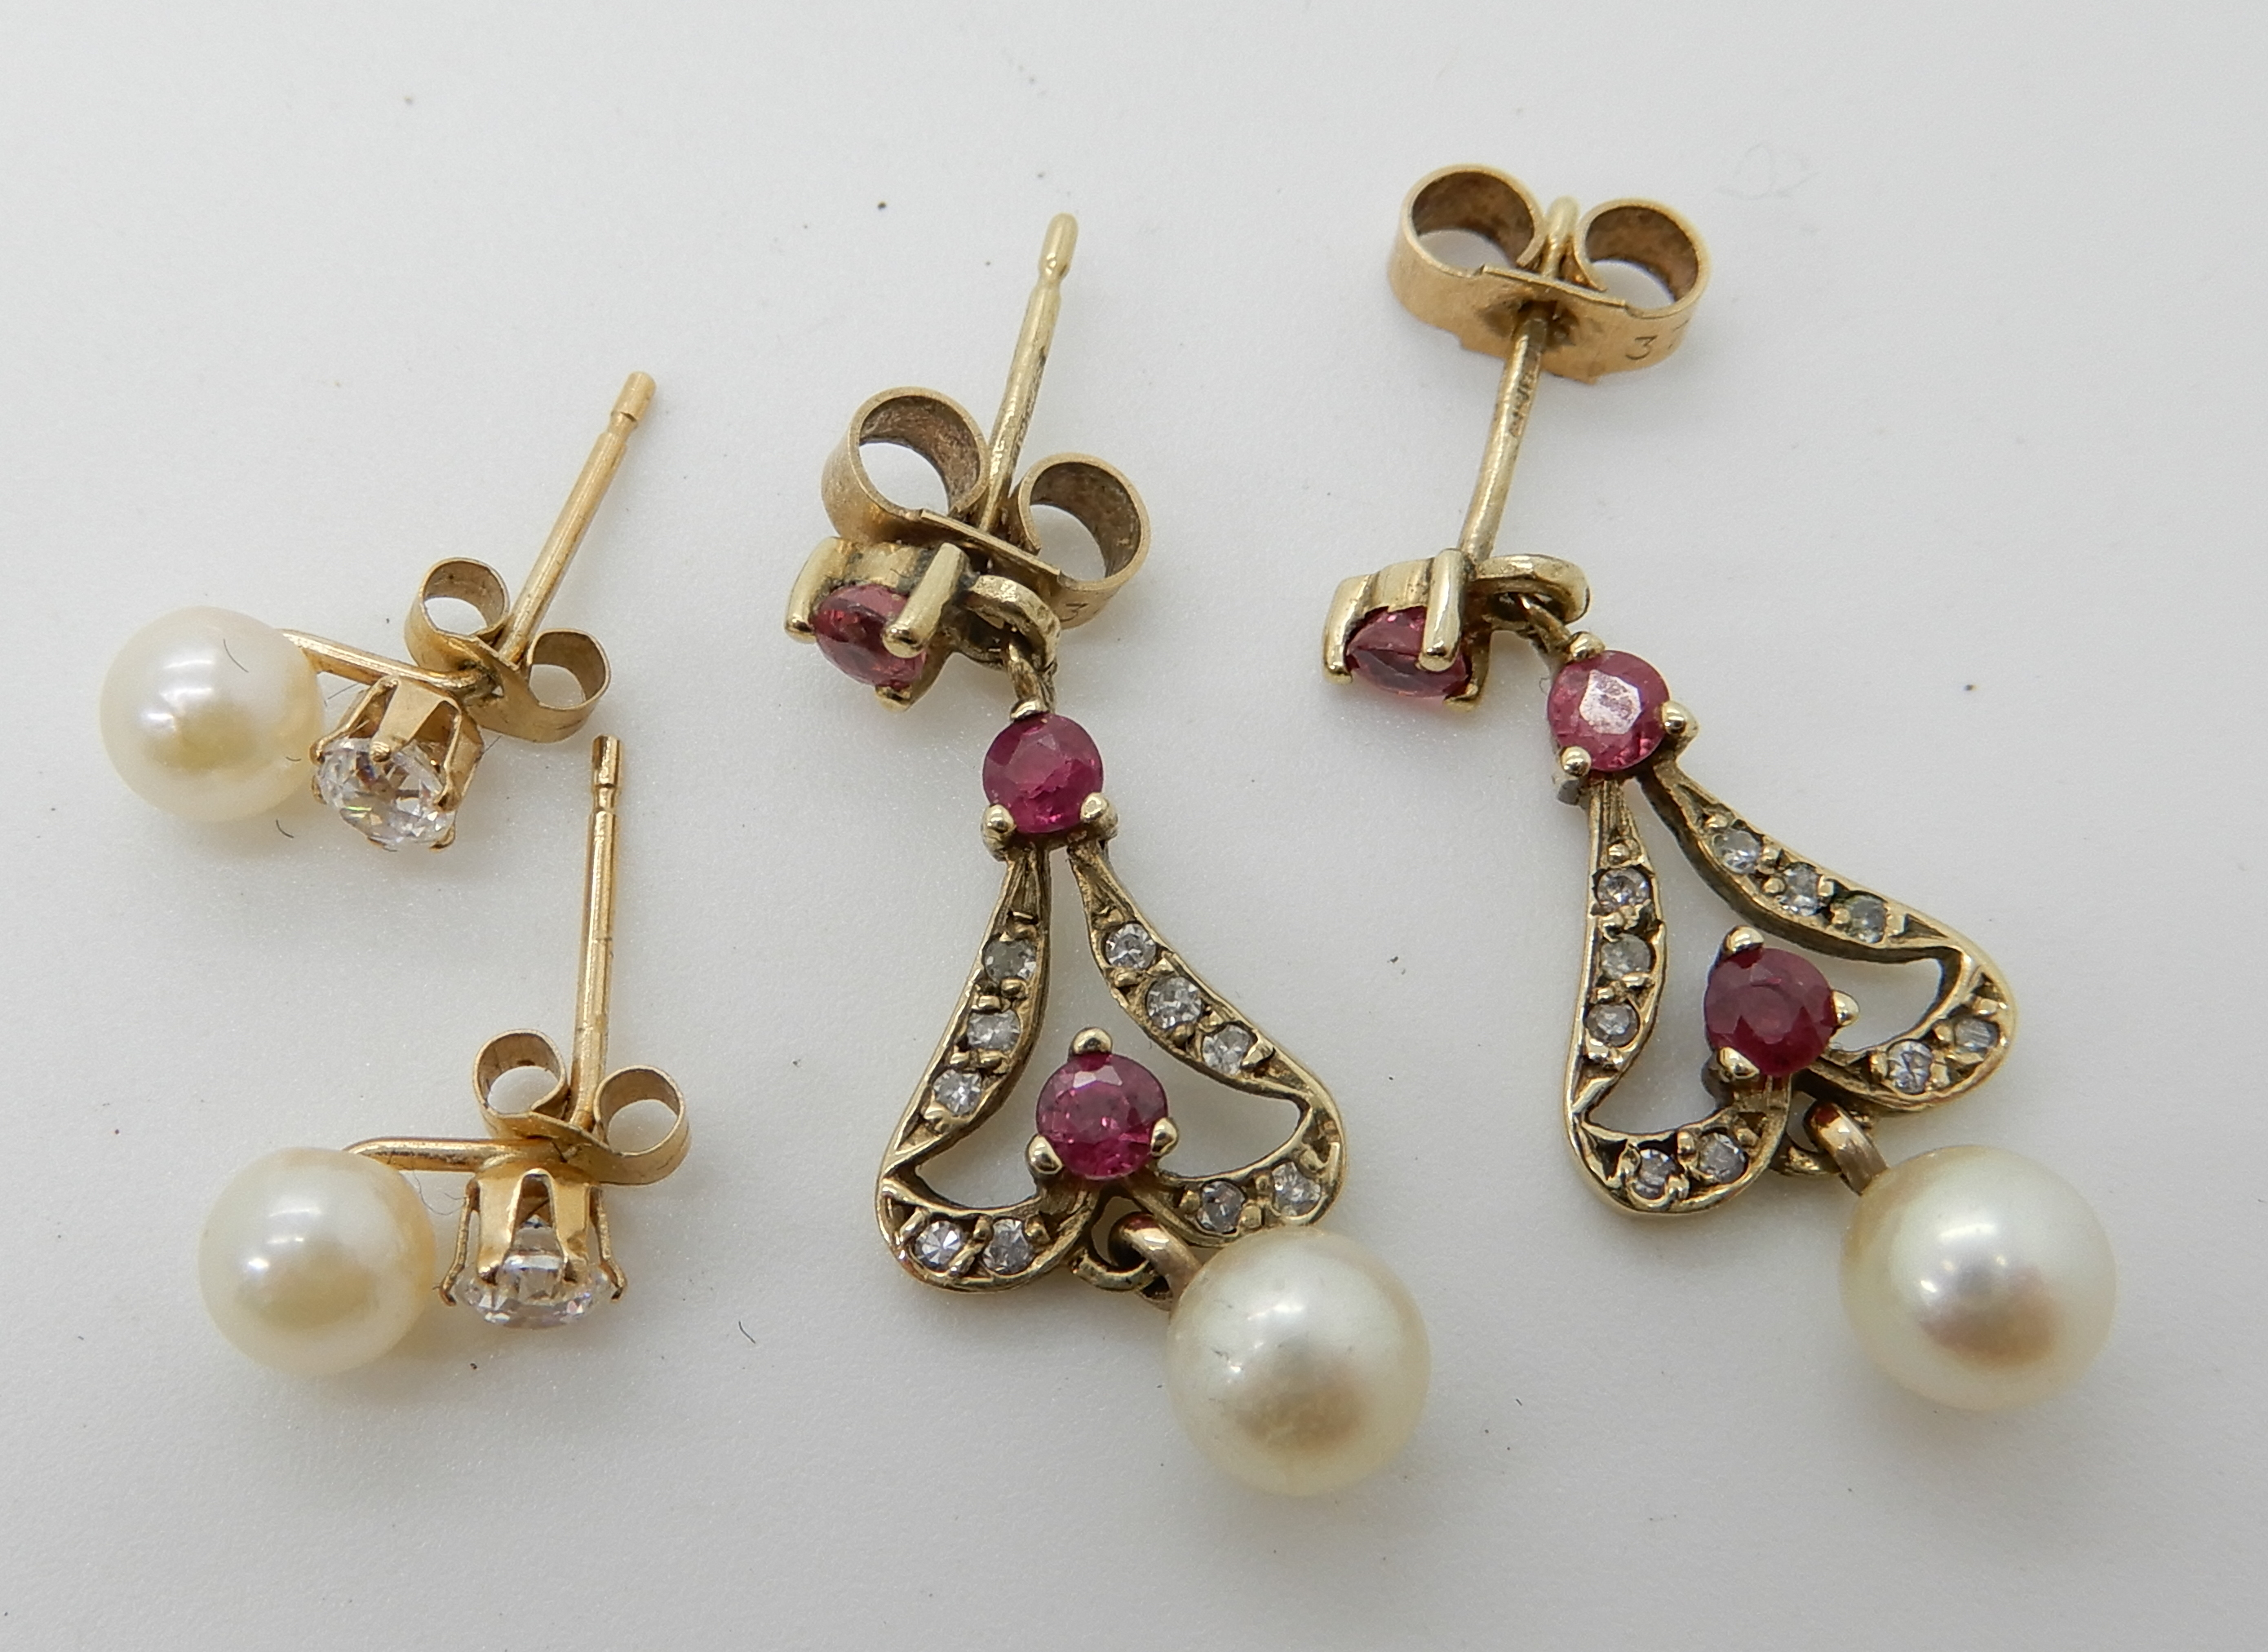 Lot 56 - A pair of 9ct diamond, ruby and pearl earrings, together with a further pair of pearl and cz